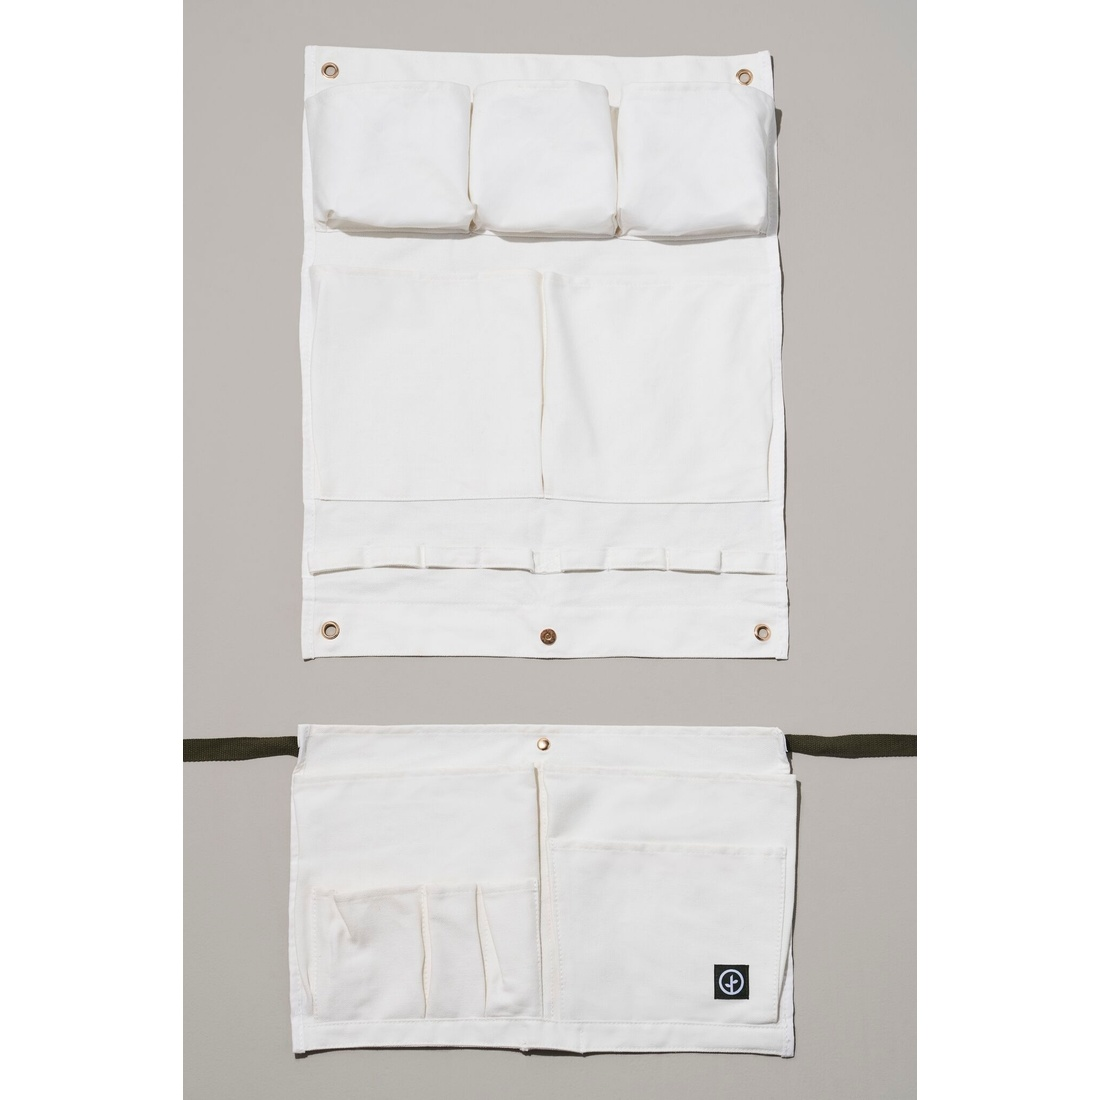 Modern Sprout Wall - Hanging Organizer & Apron